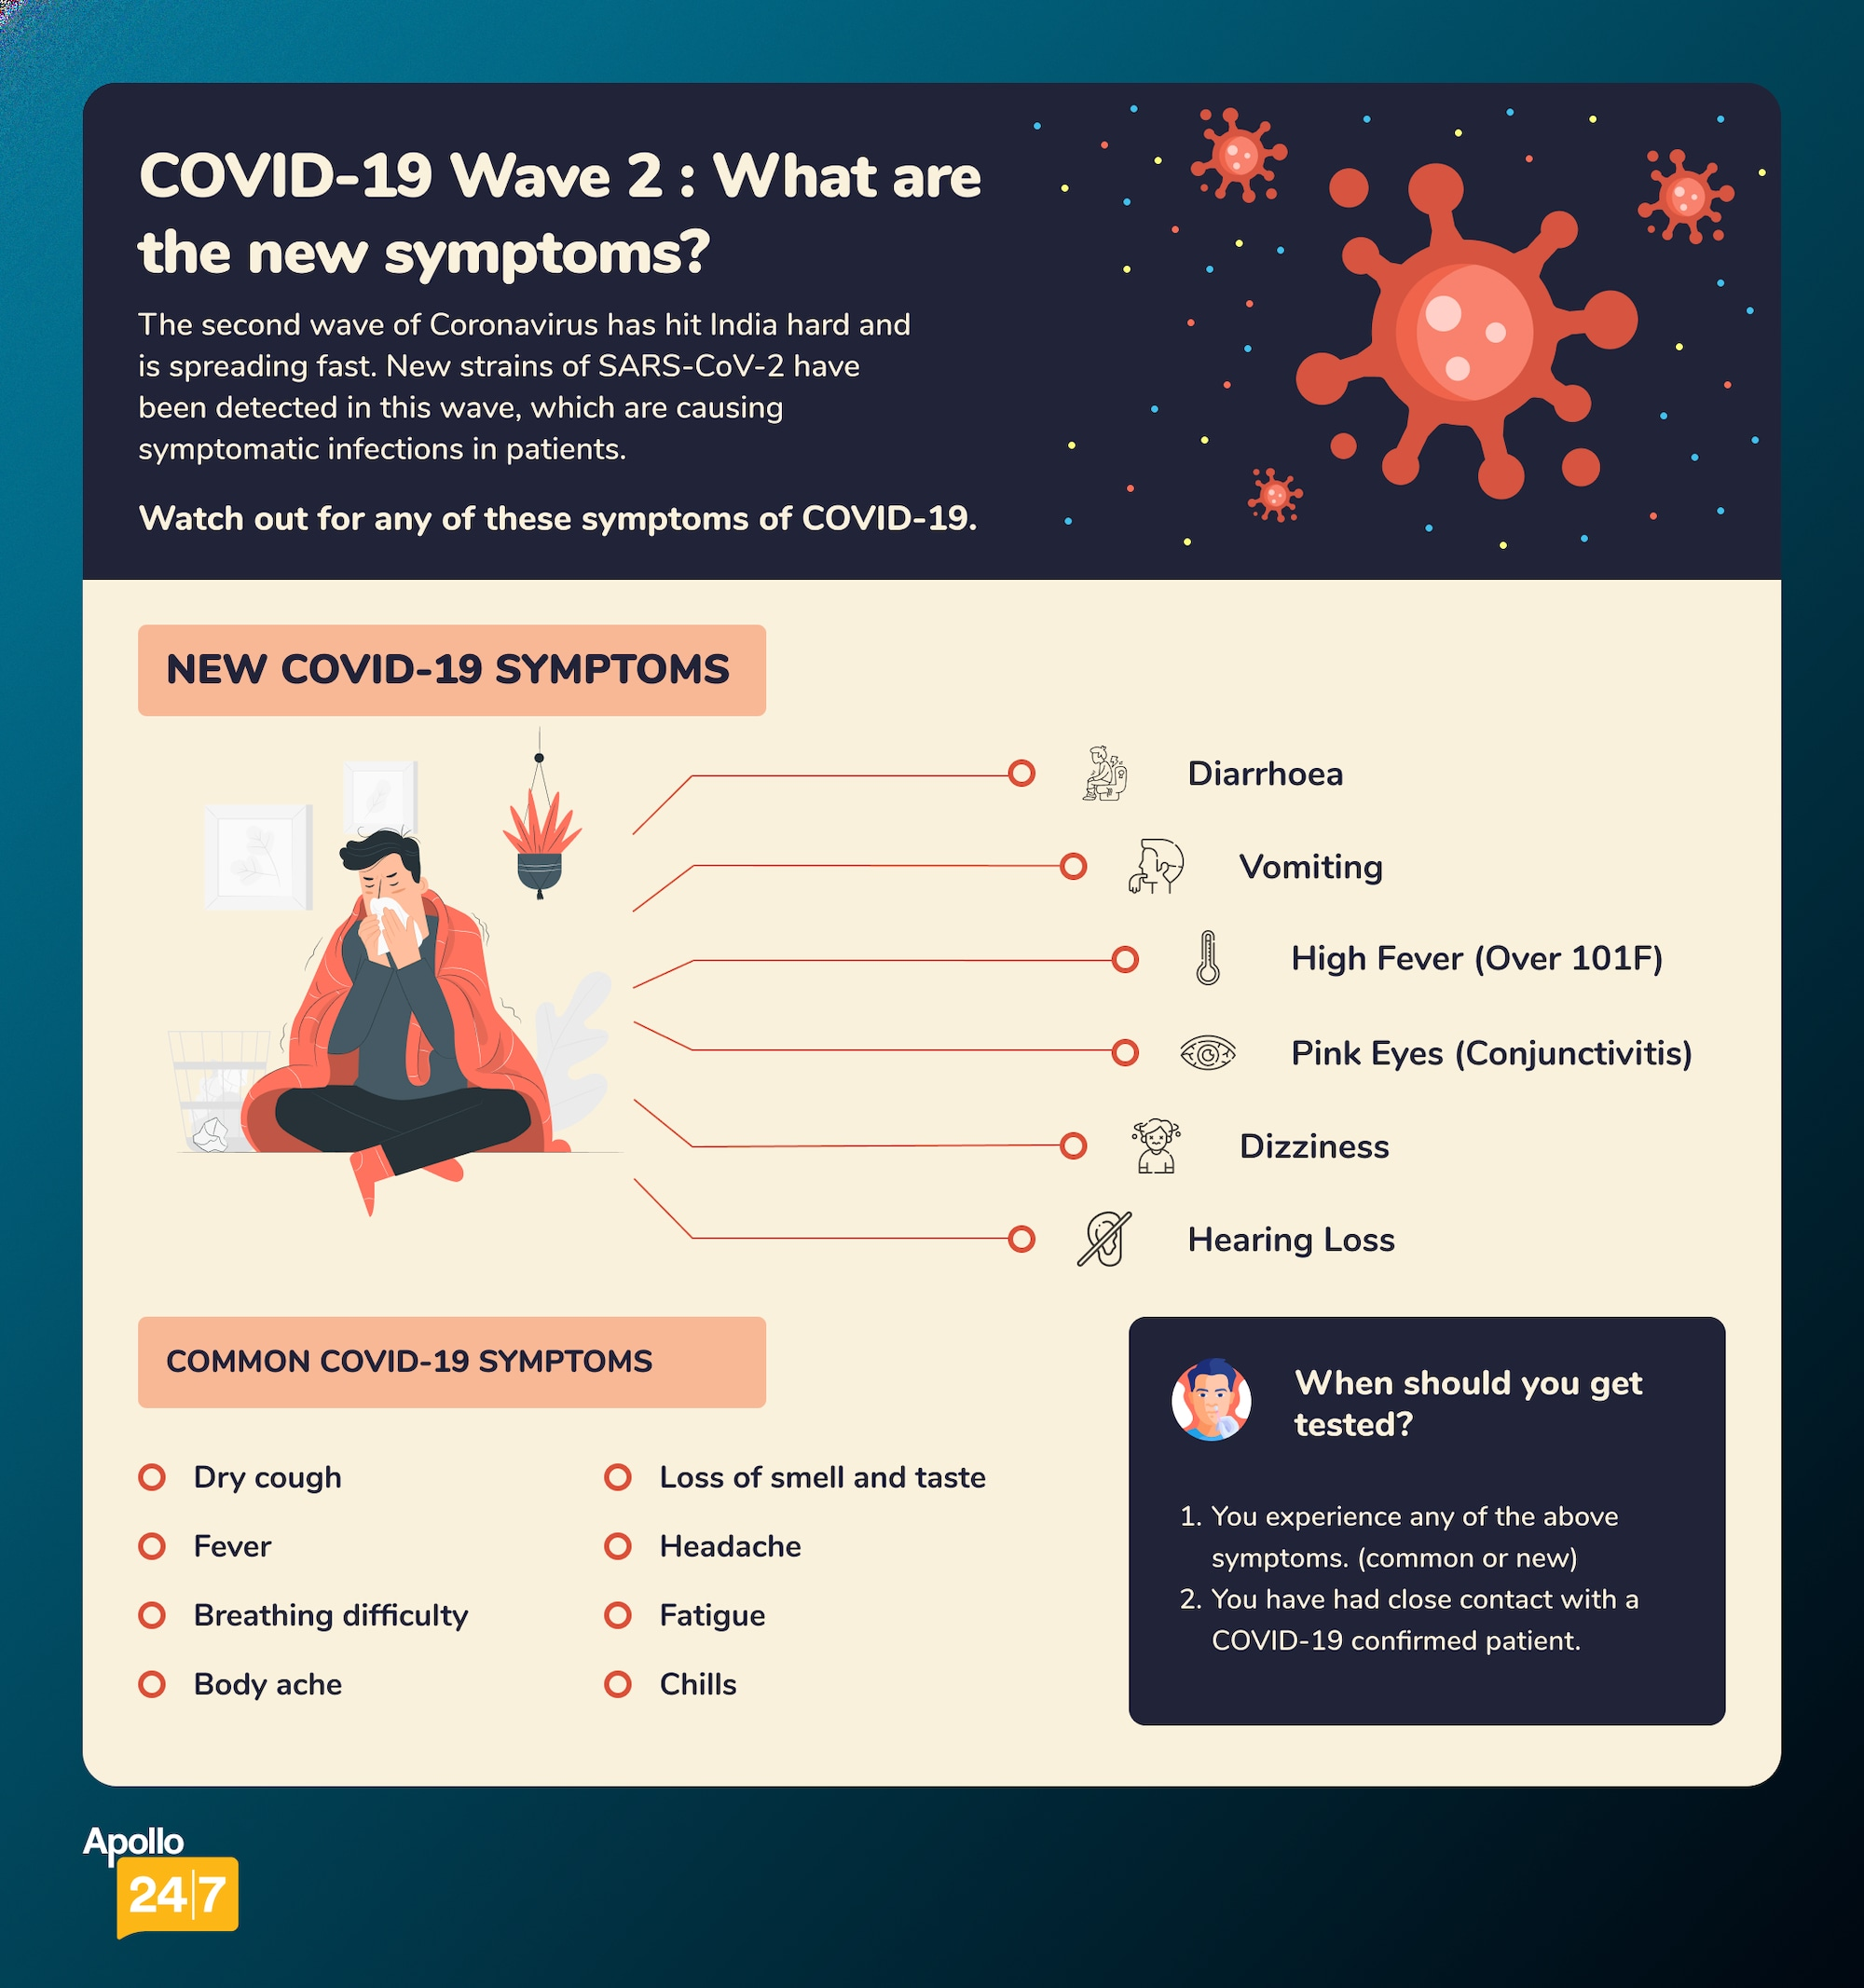 Watch out for these new symptoms of COVID-19